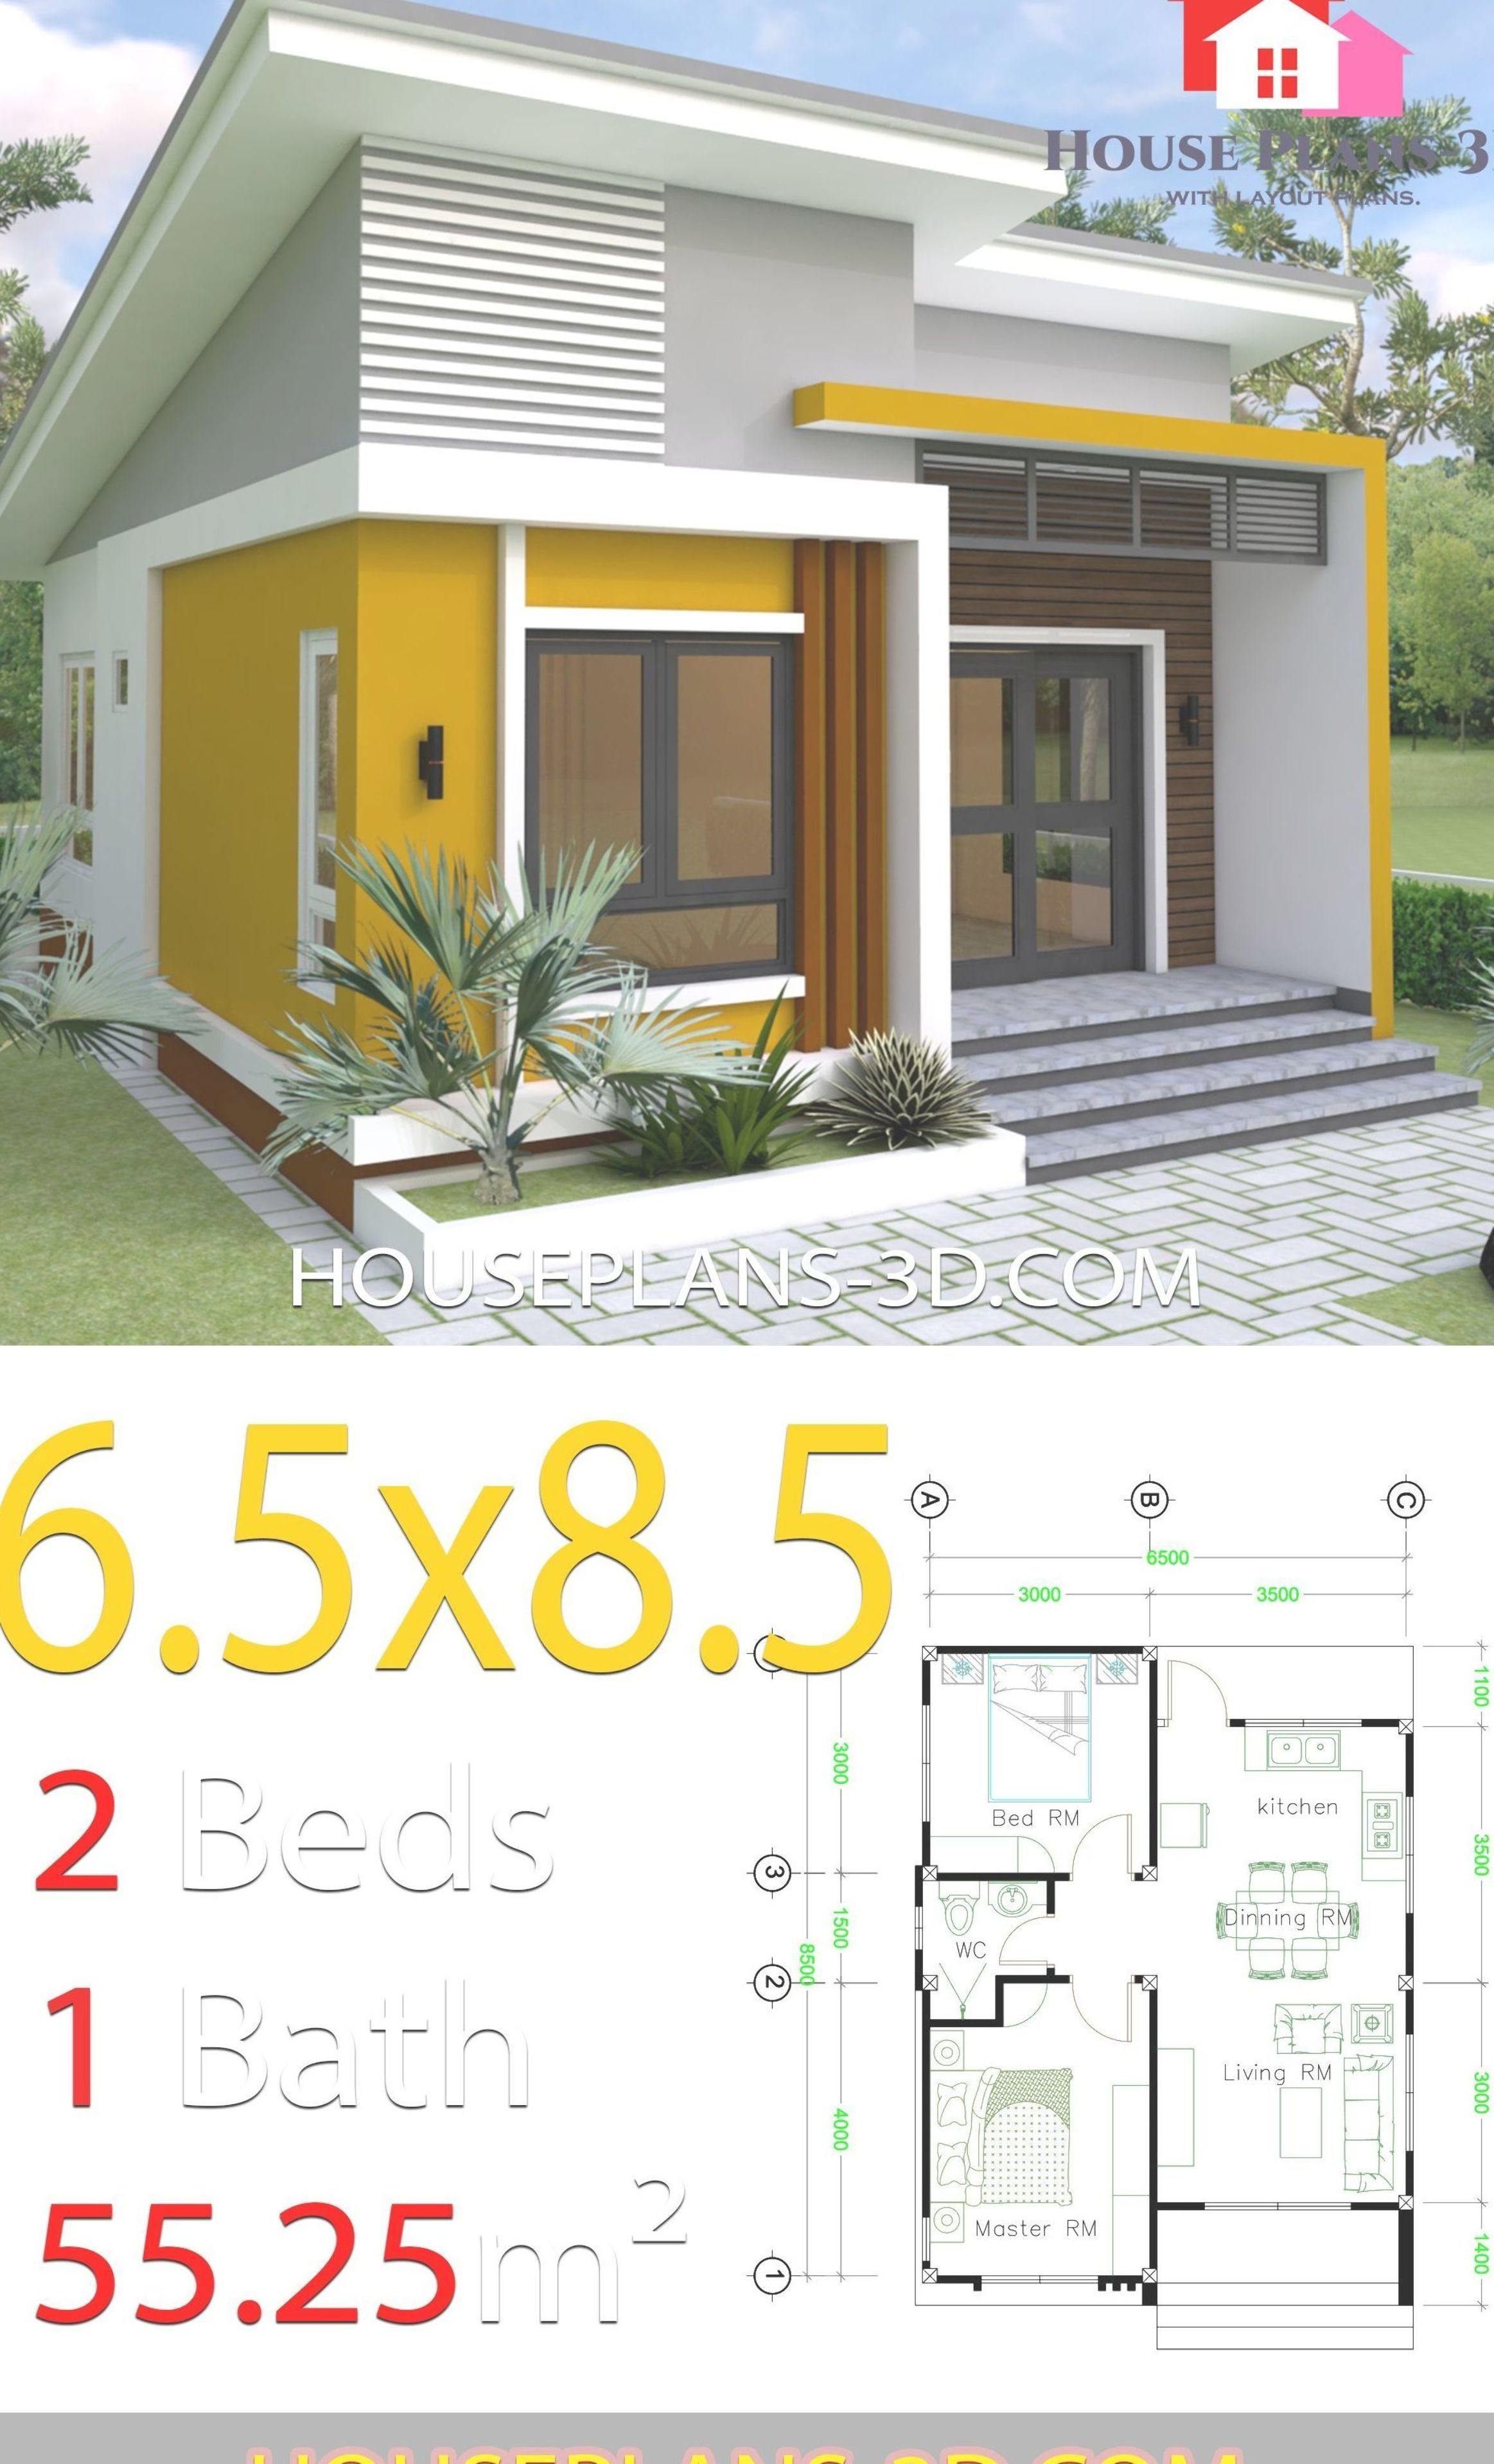 Small House Design 6.5x8.5 With 2 Bedrooms House Plans